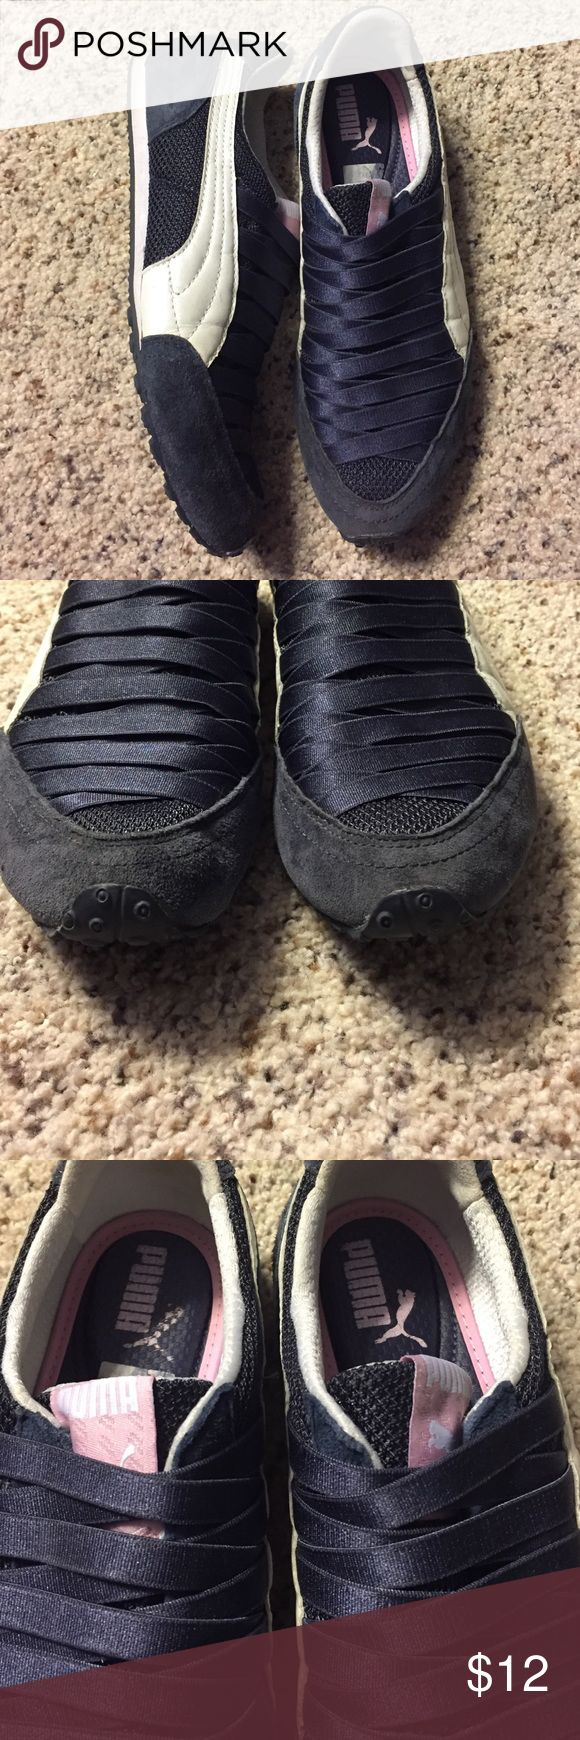 Puma slip on sneakers like Go walks 8 suede These can be slipped on an instant for a secure comfortable fit. Women's size 8. Navy blue with white stripe and subtle baby pink details. In excellent preowned condition. Puma Shoes Sneakers